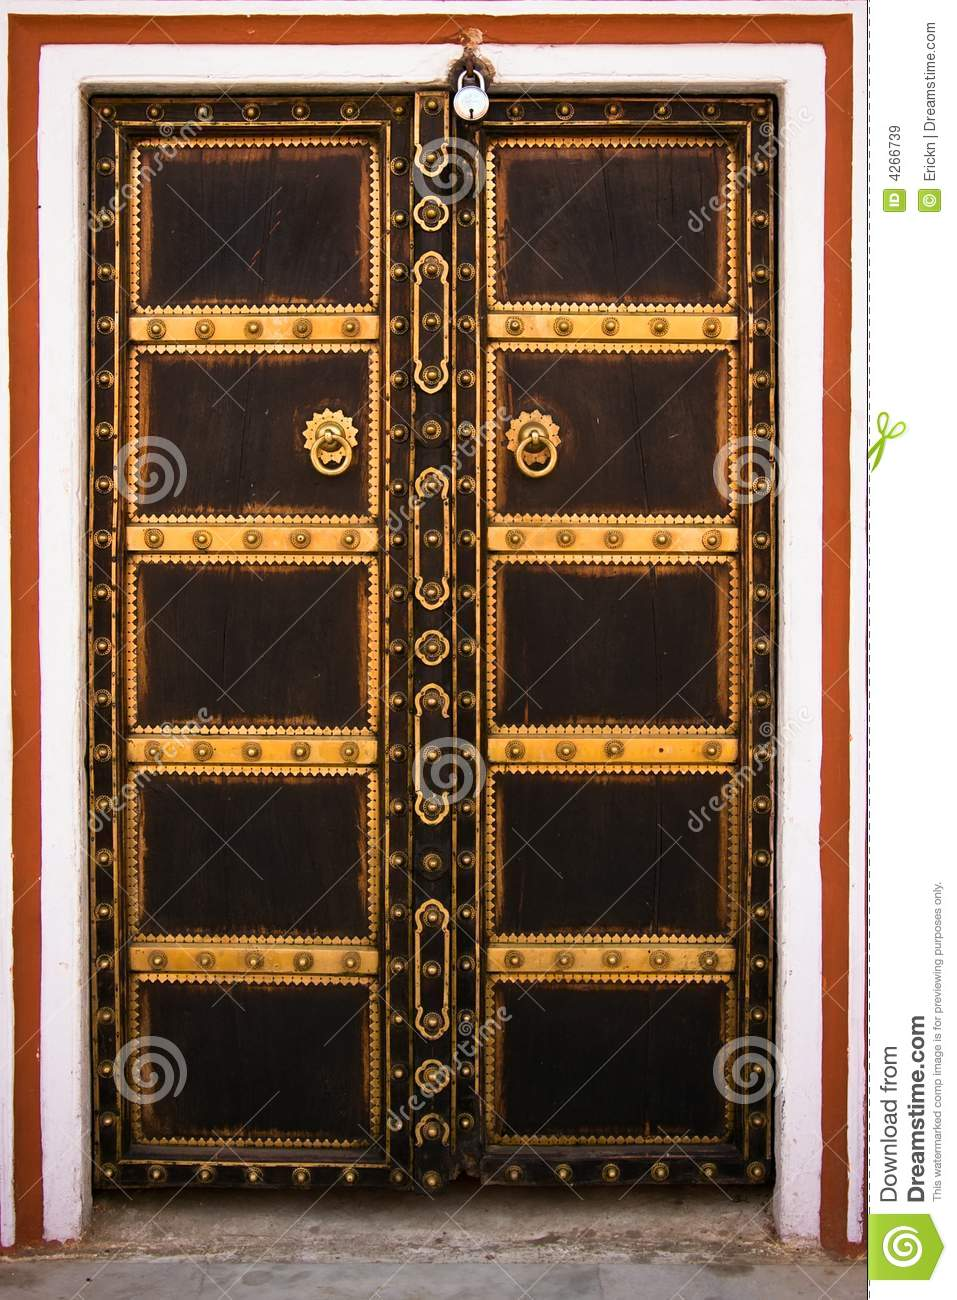 Decorated wooden door in the City Palace - Jaipur, Rajasthan, India.